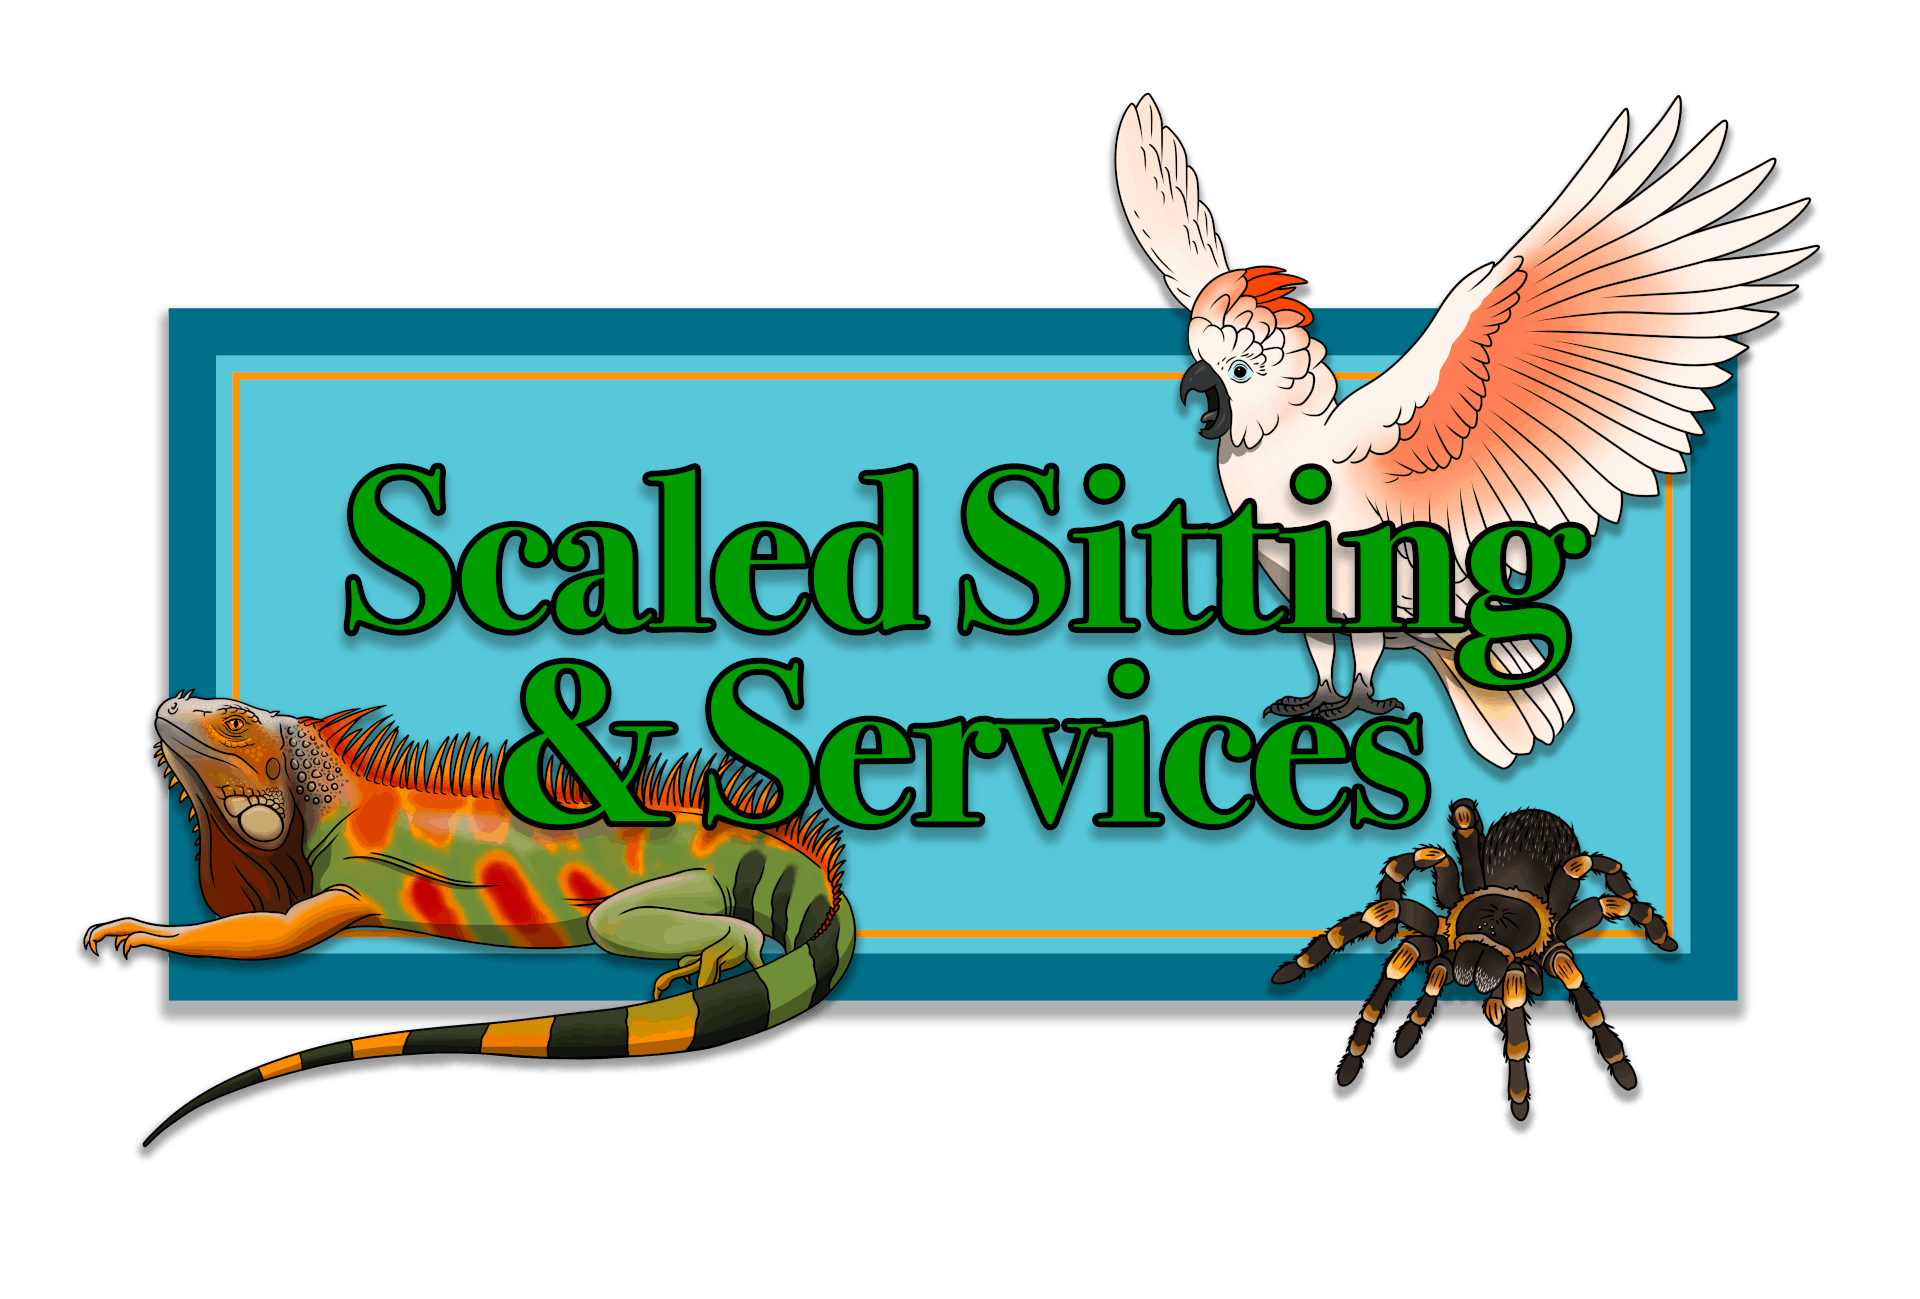 Business Logo. Green bold text, green iguana lower left corner, cockatoo with open wings in upper right corner and a tarantula image lower right corner, logo has blue background